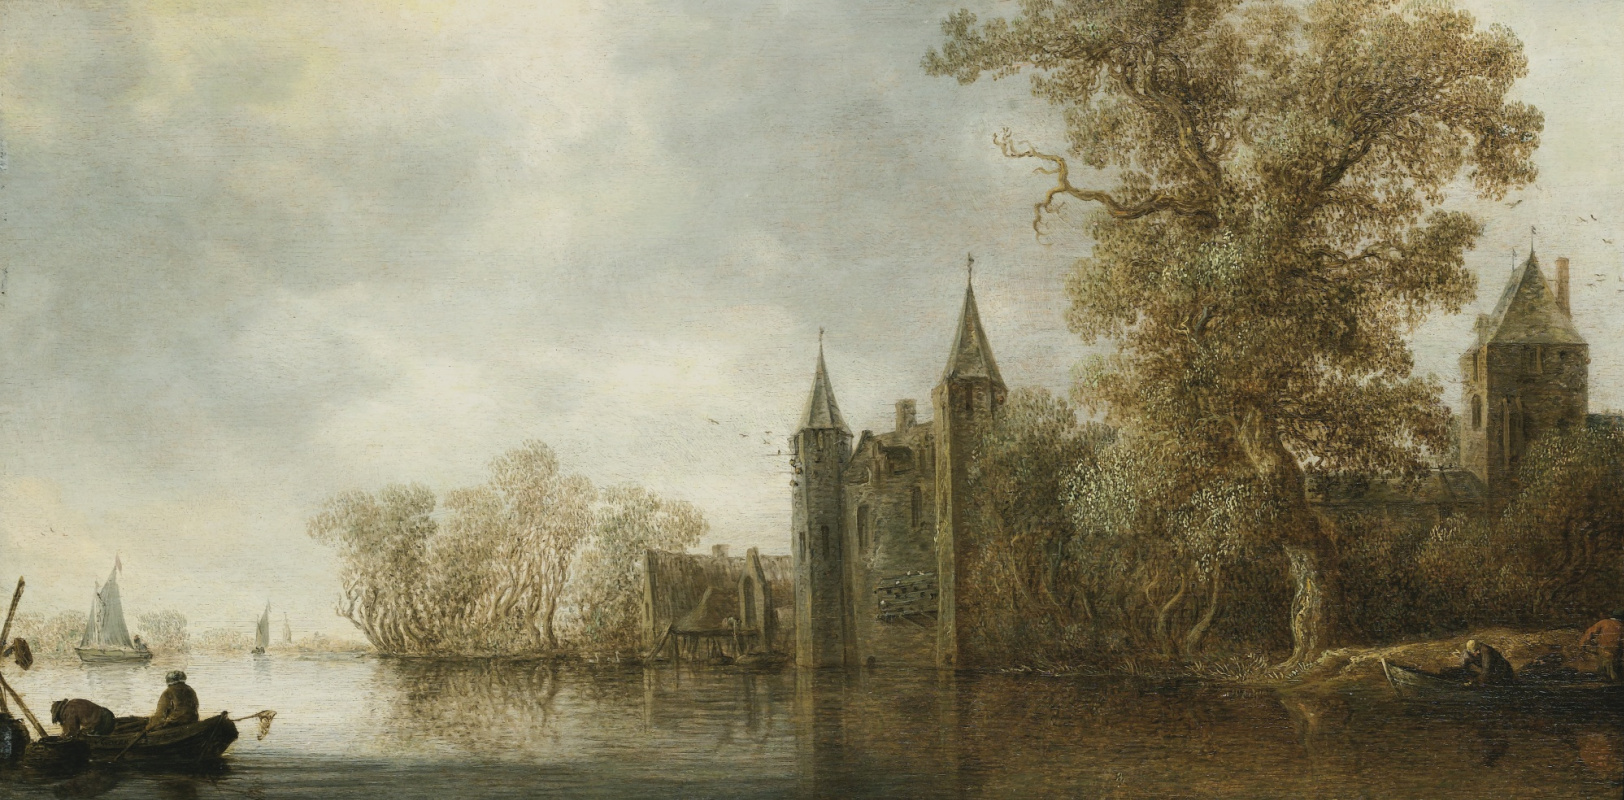 Jan van Goyen. Medieval fortress on the banks of the river